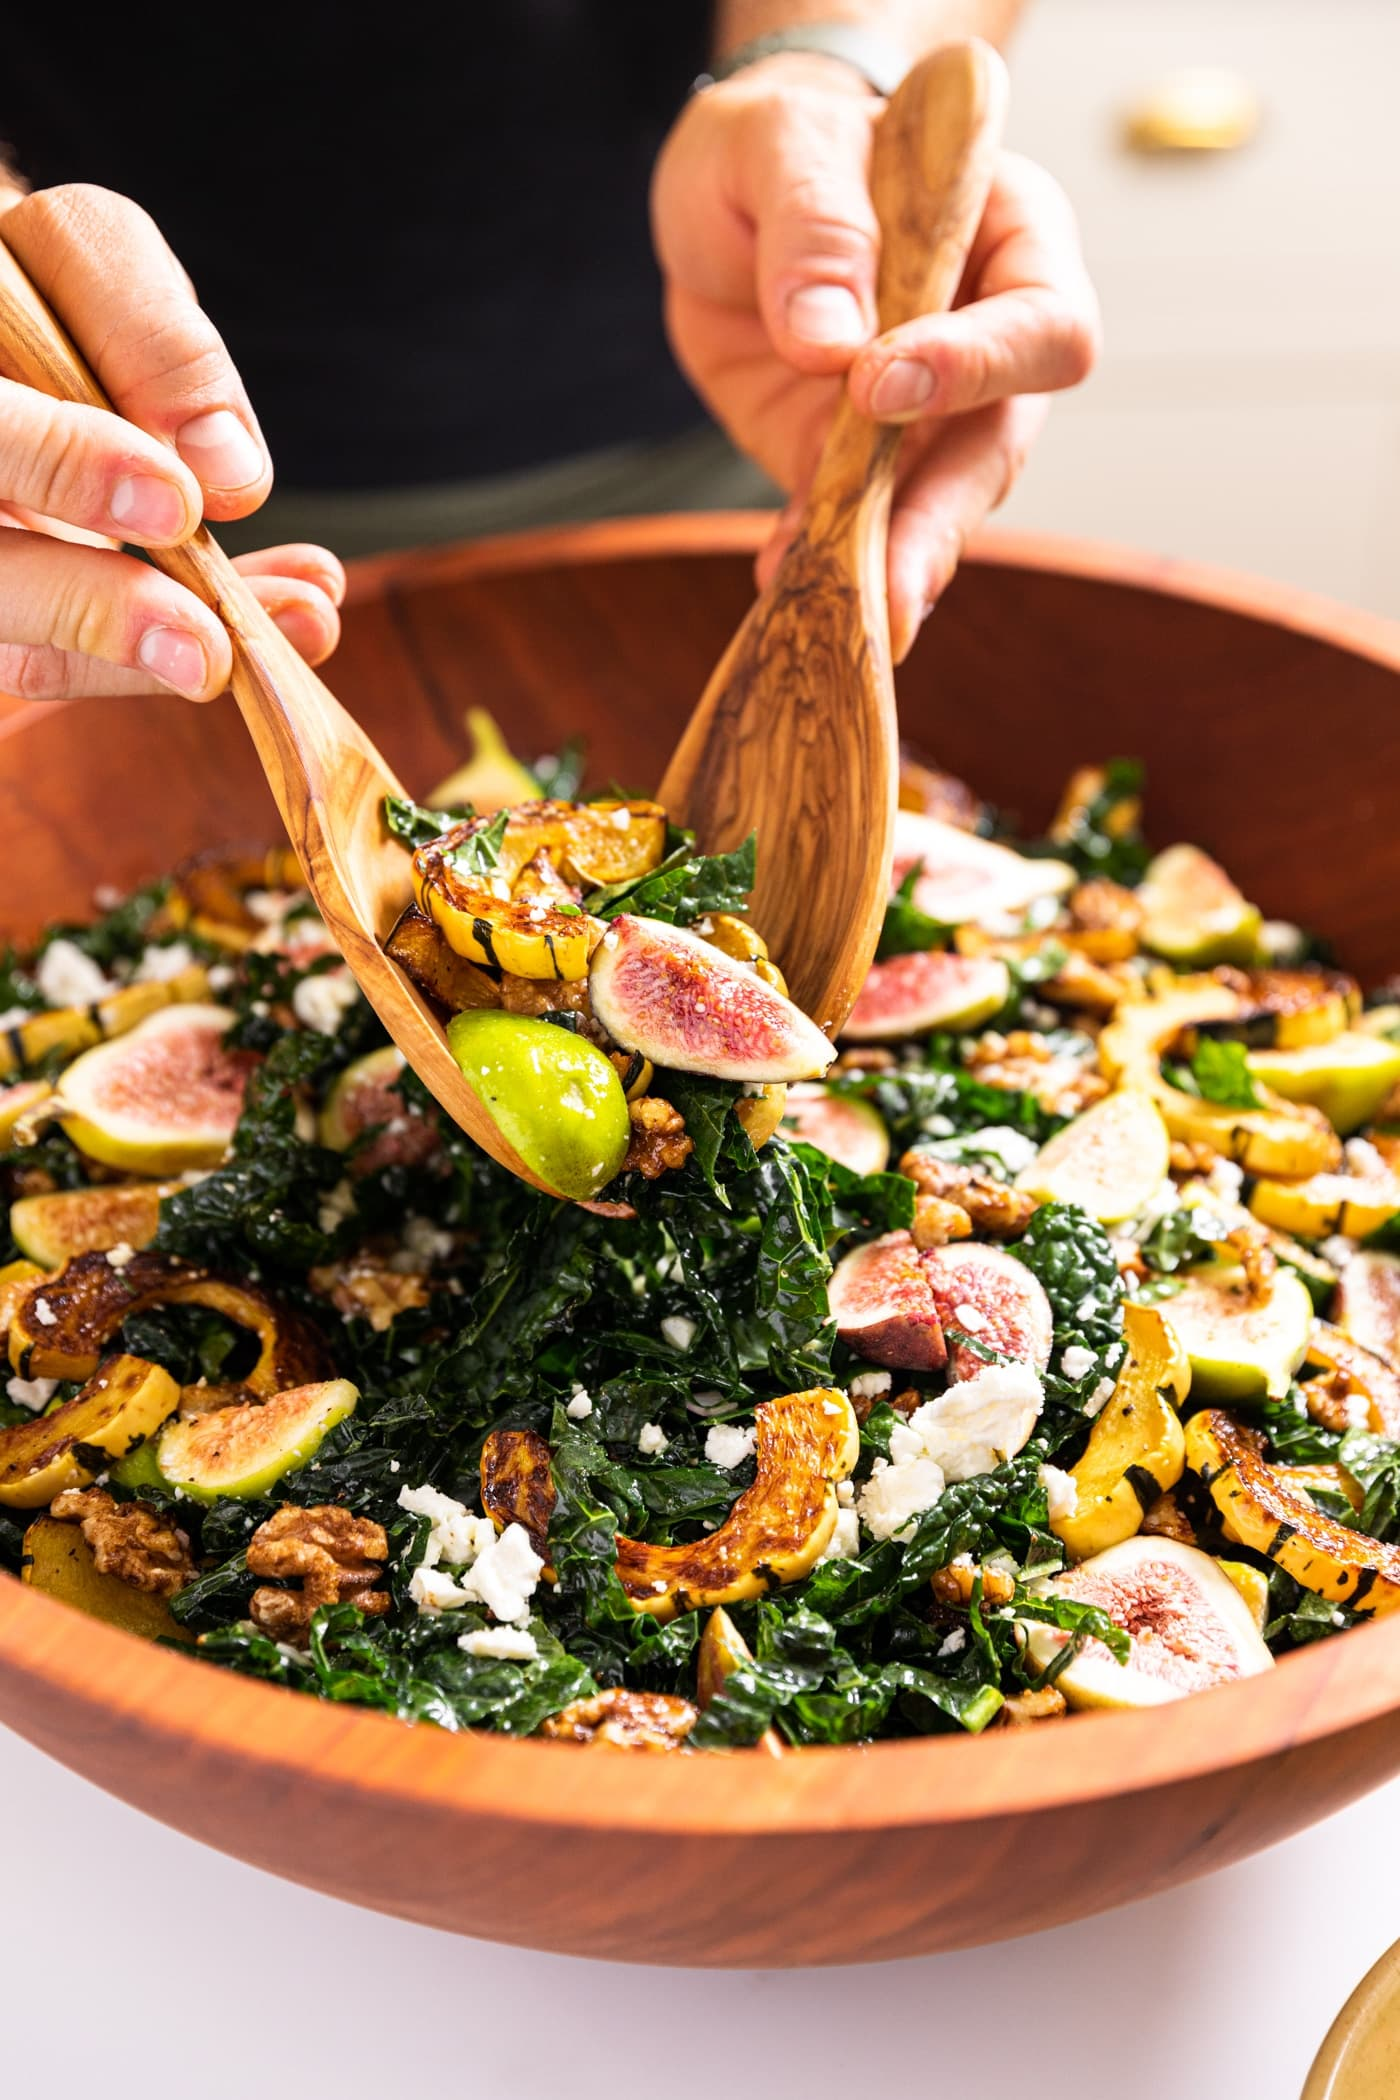 Two hands holding wooden tongs dipping salad out of a wooden bowl with pieces of kale and fig and squash